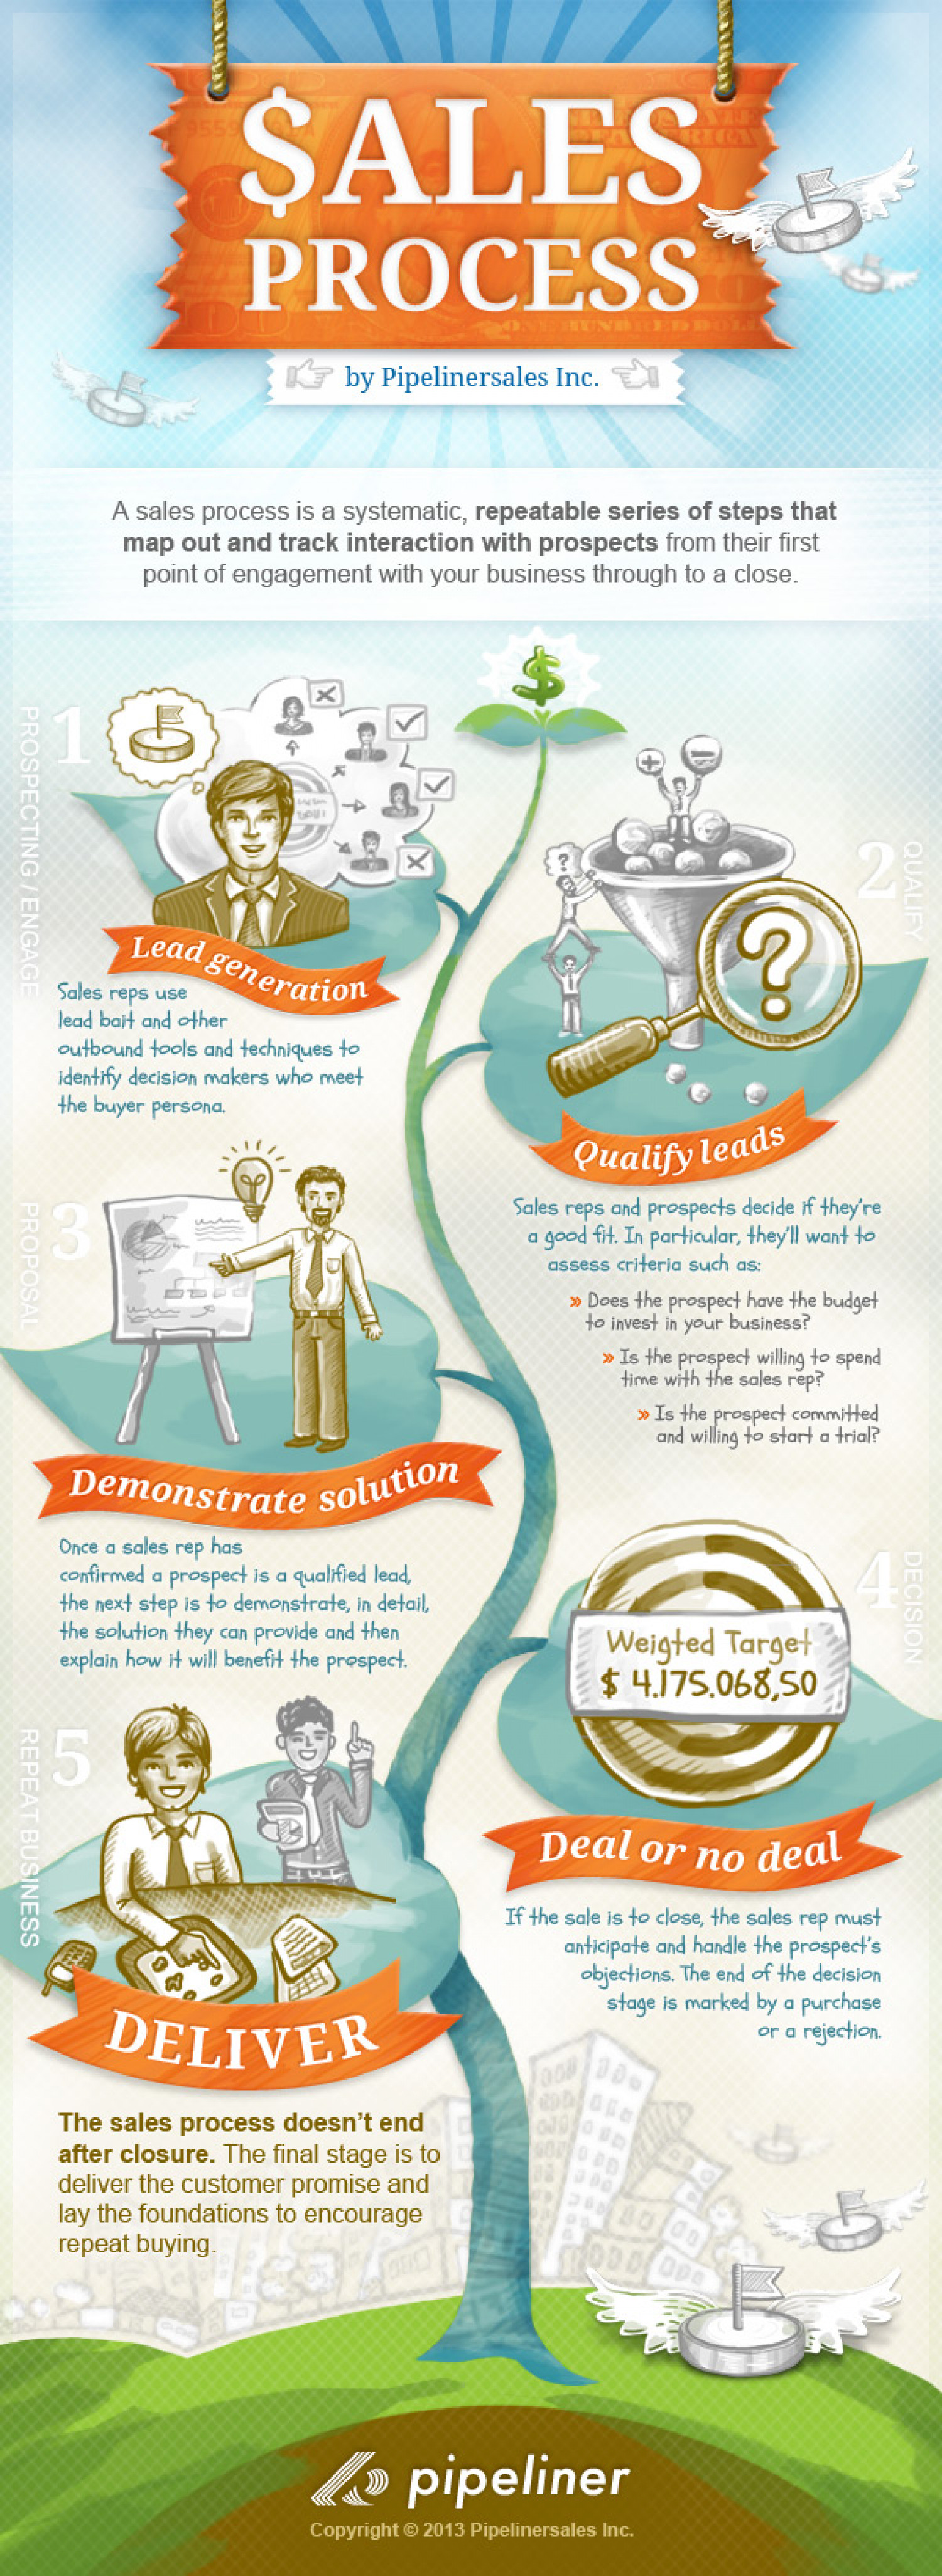 5 Crucial Sales Process Steps - Explained Infographic